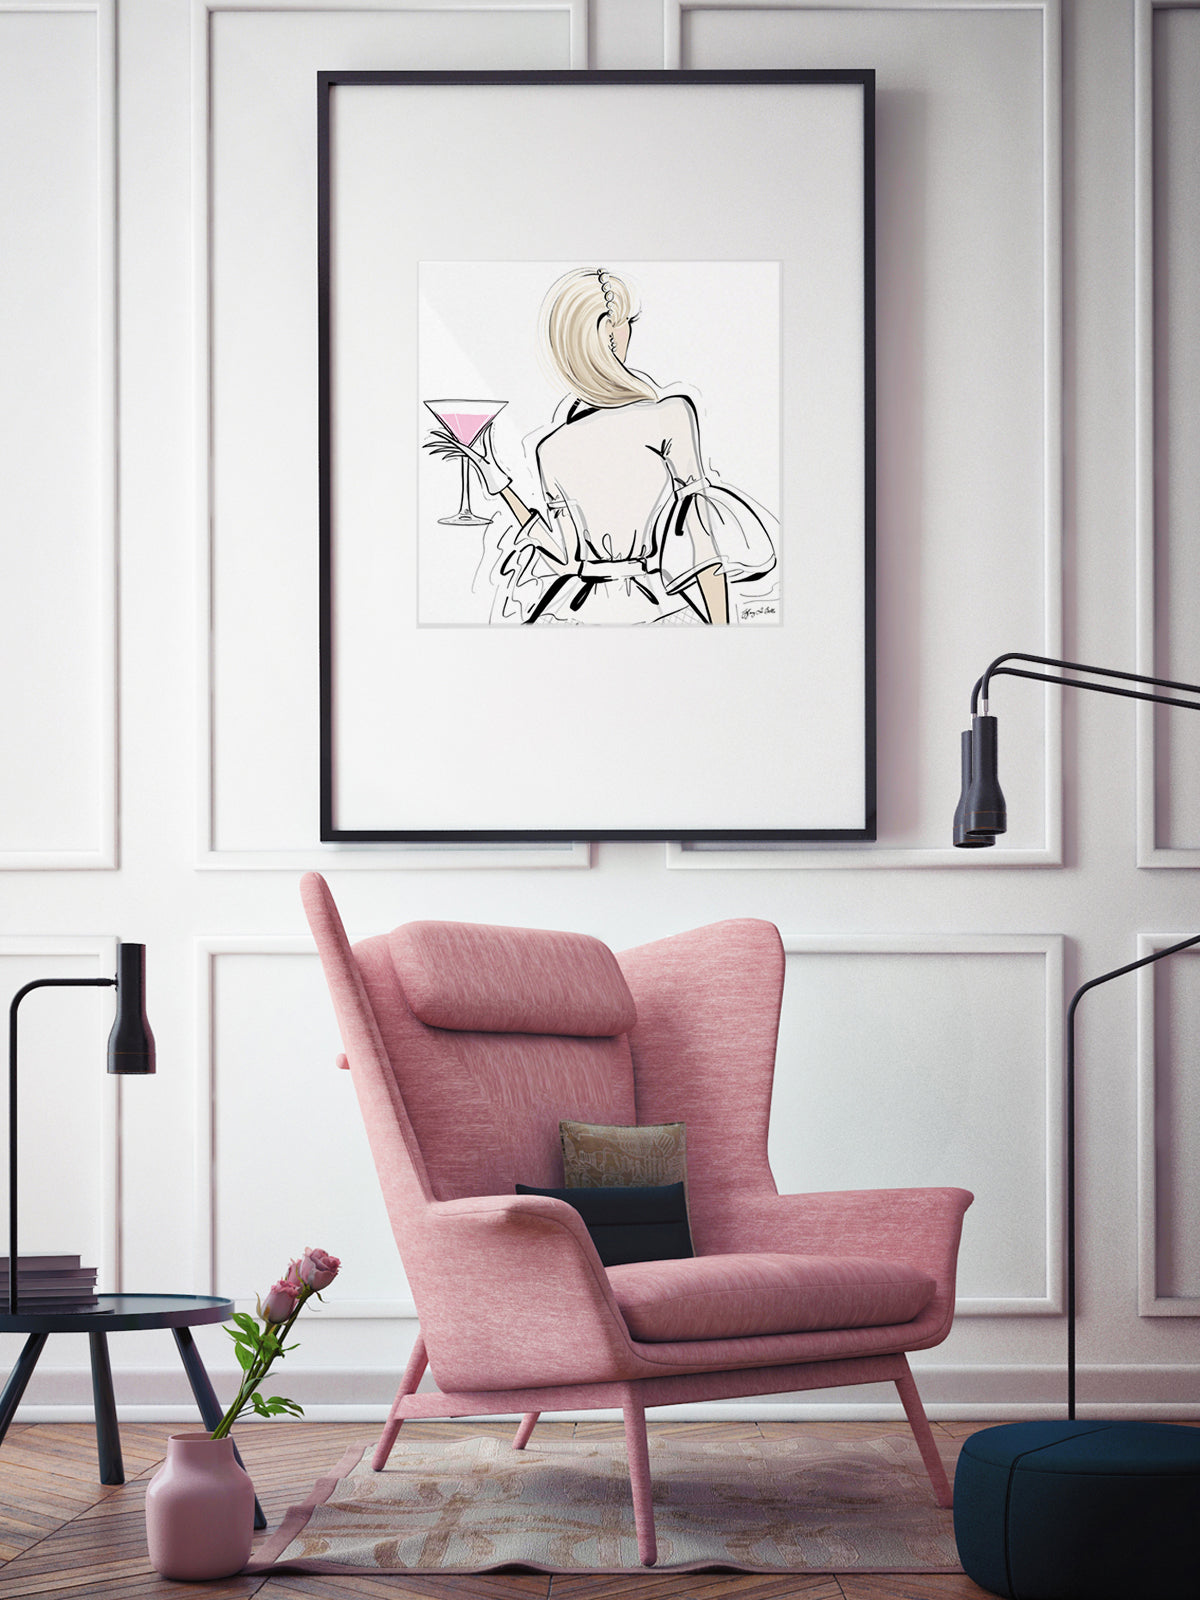 Dior Cocktails - Illustration - Limited Edition Print - Tiffany La Belle